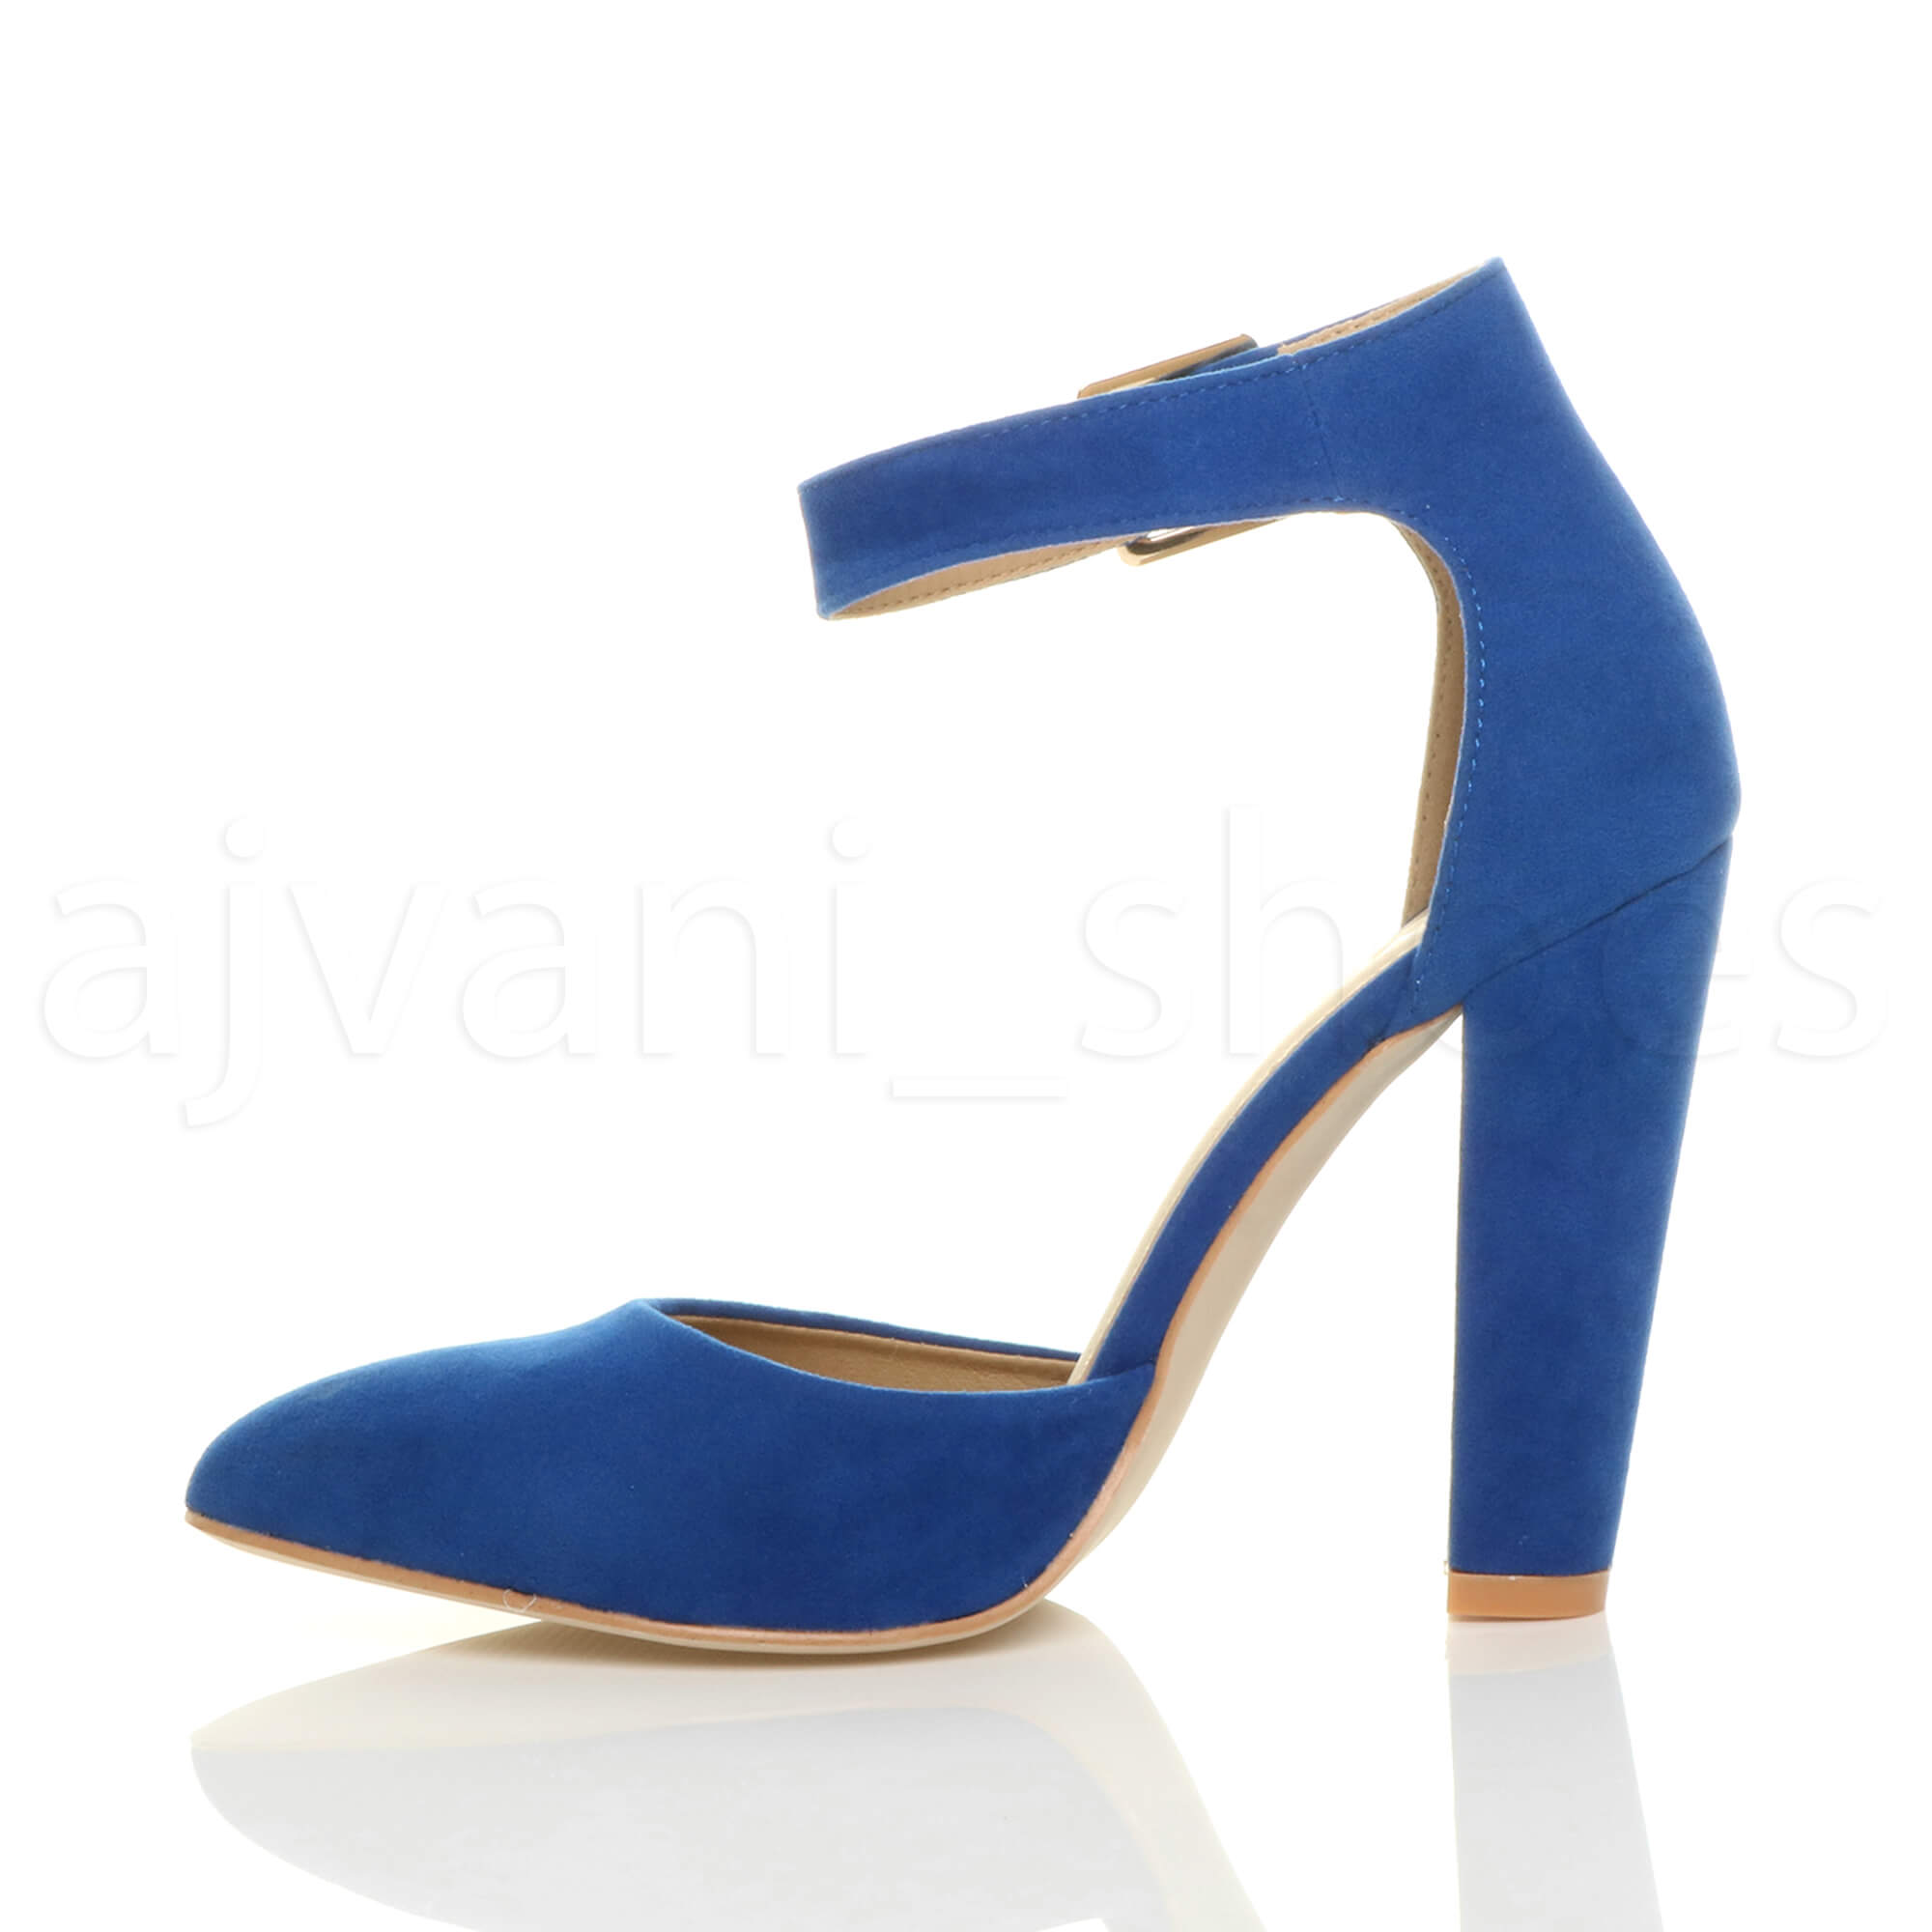 WOMENS-LADIES-HIGH-BLOCK-HEEL-ANKLE-STRAP-BUCKLE-POINTED-COURT-SHOES-SIZE thumbnail 25